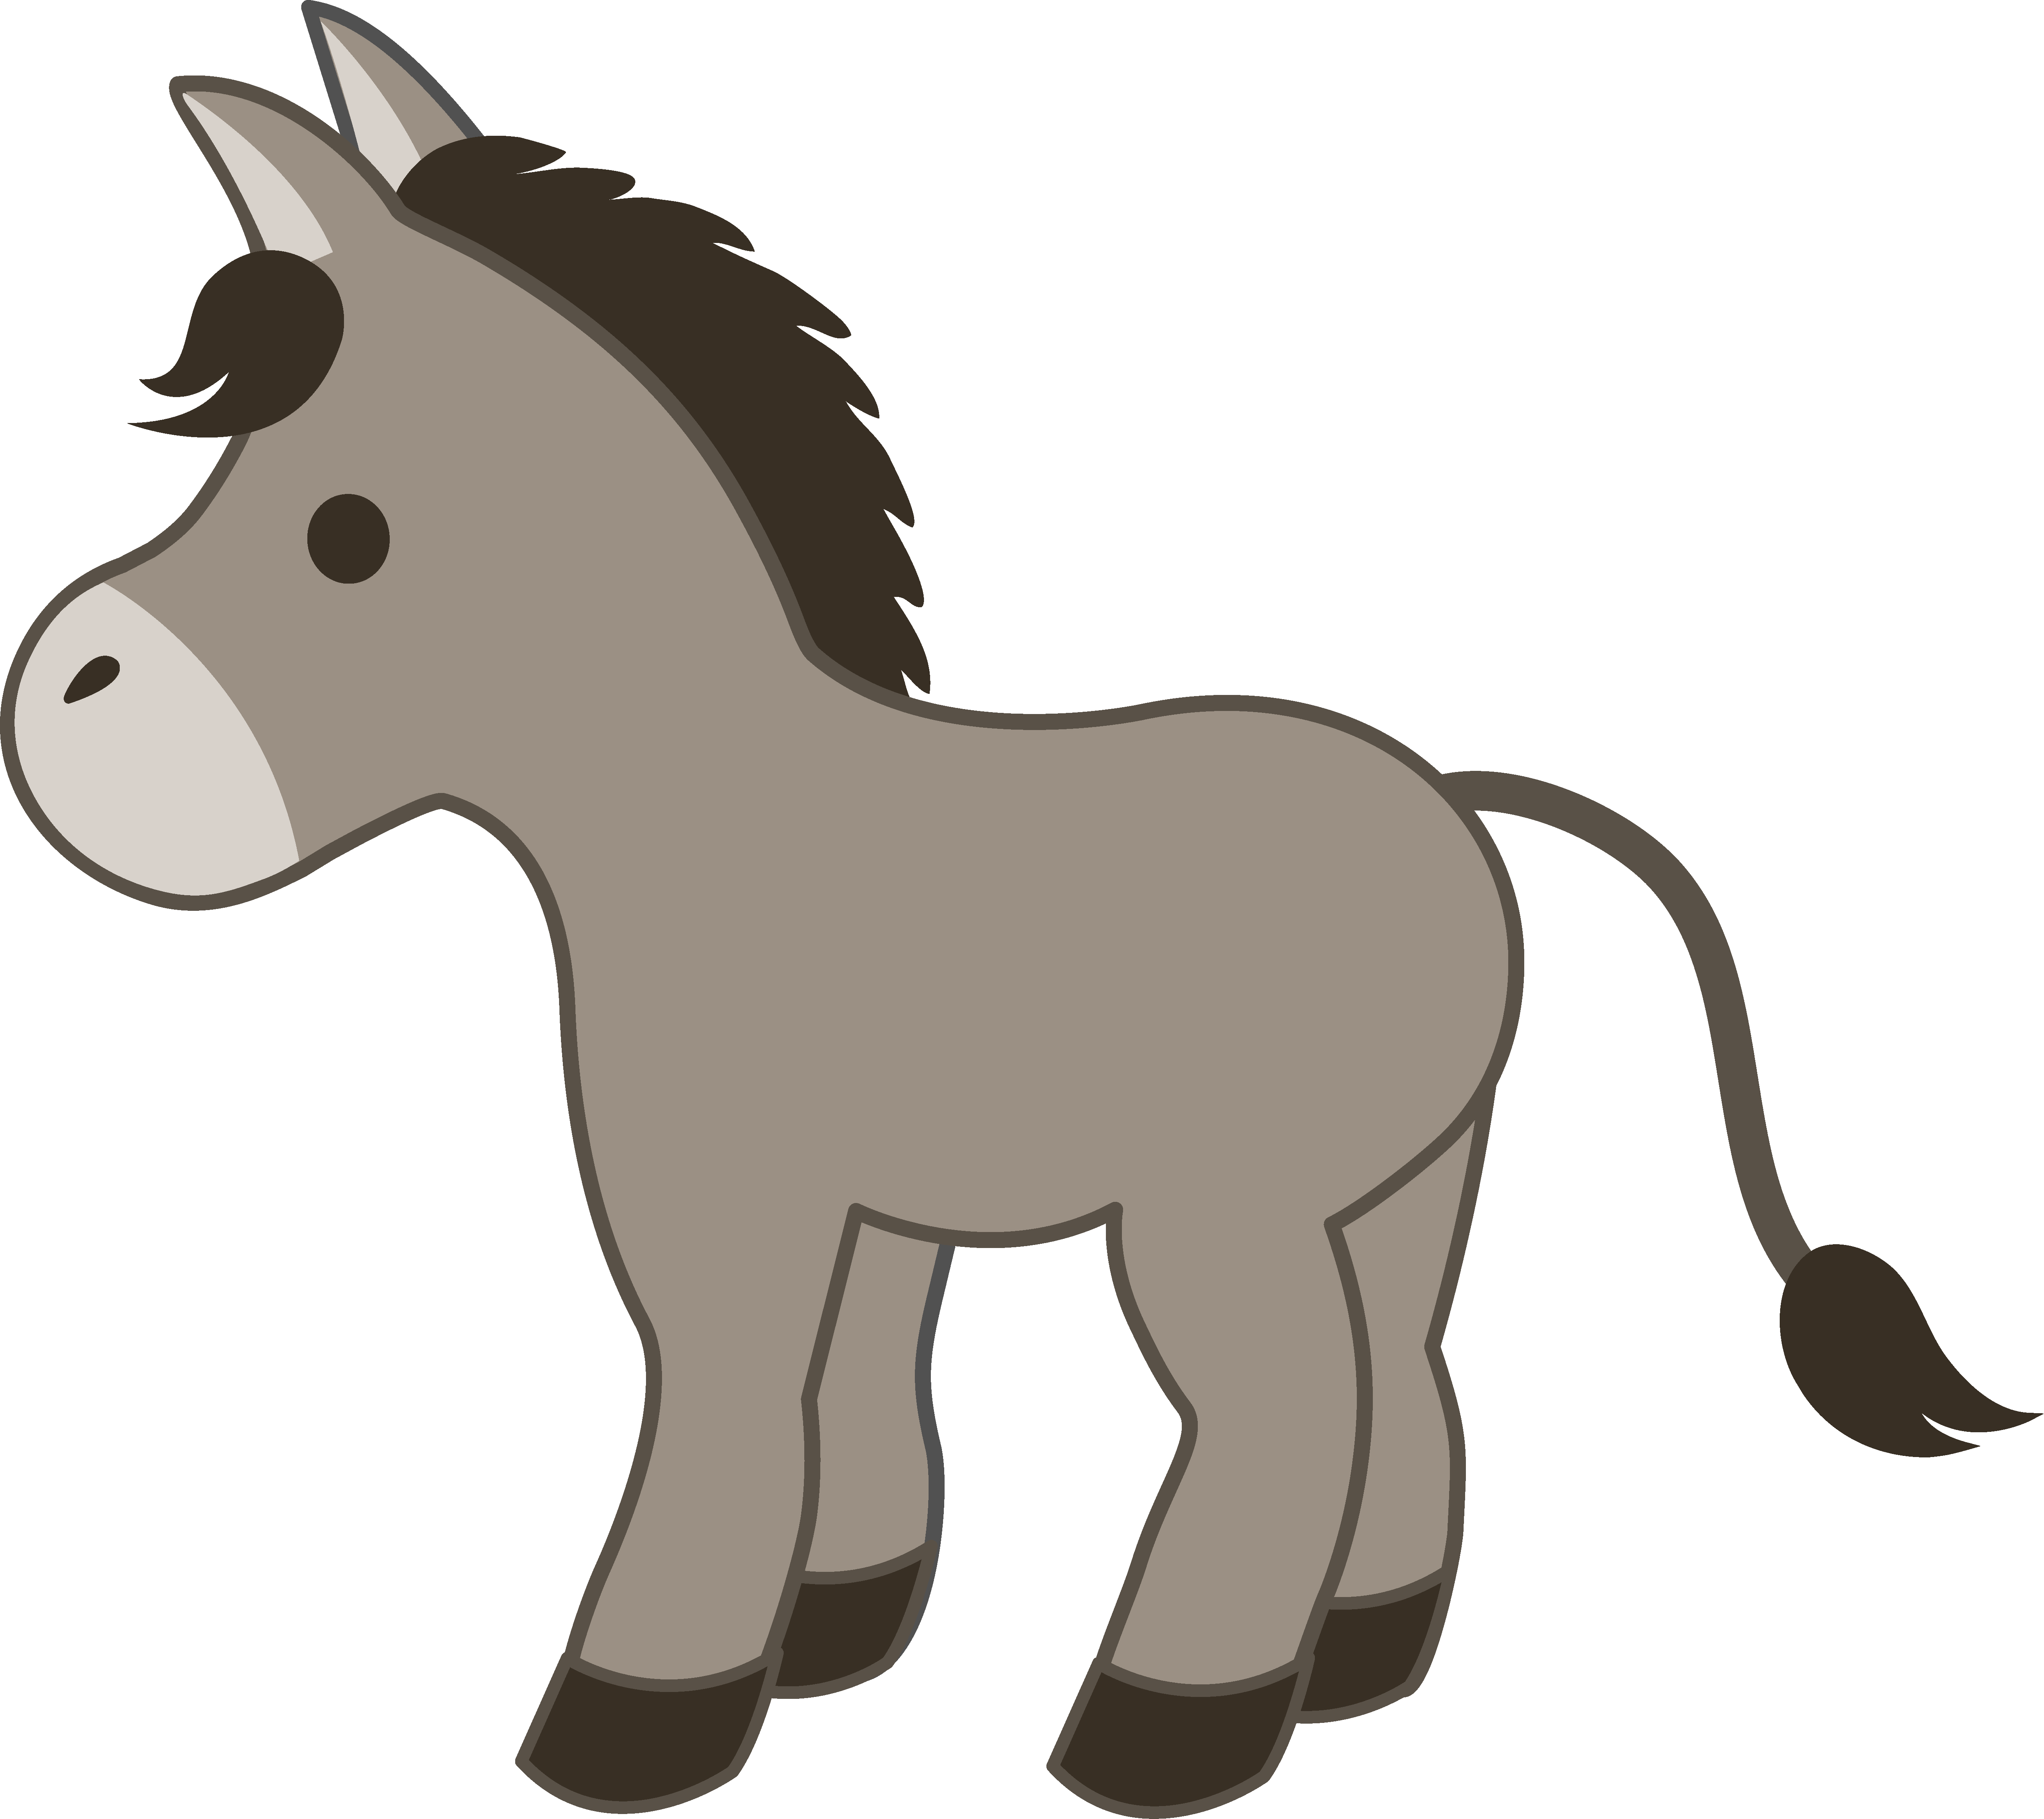 graphic transparent library Cute gray donkey free. Mule clipart dunkey.